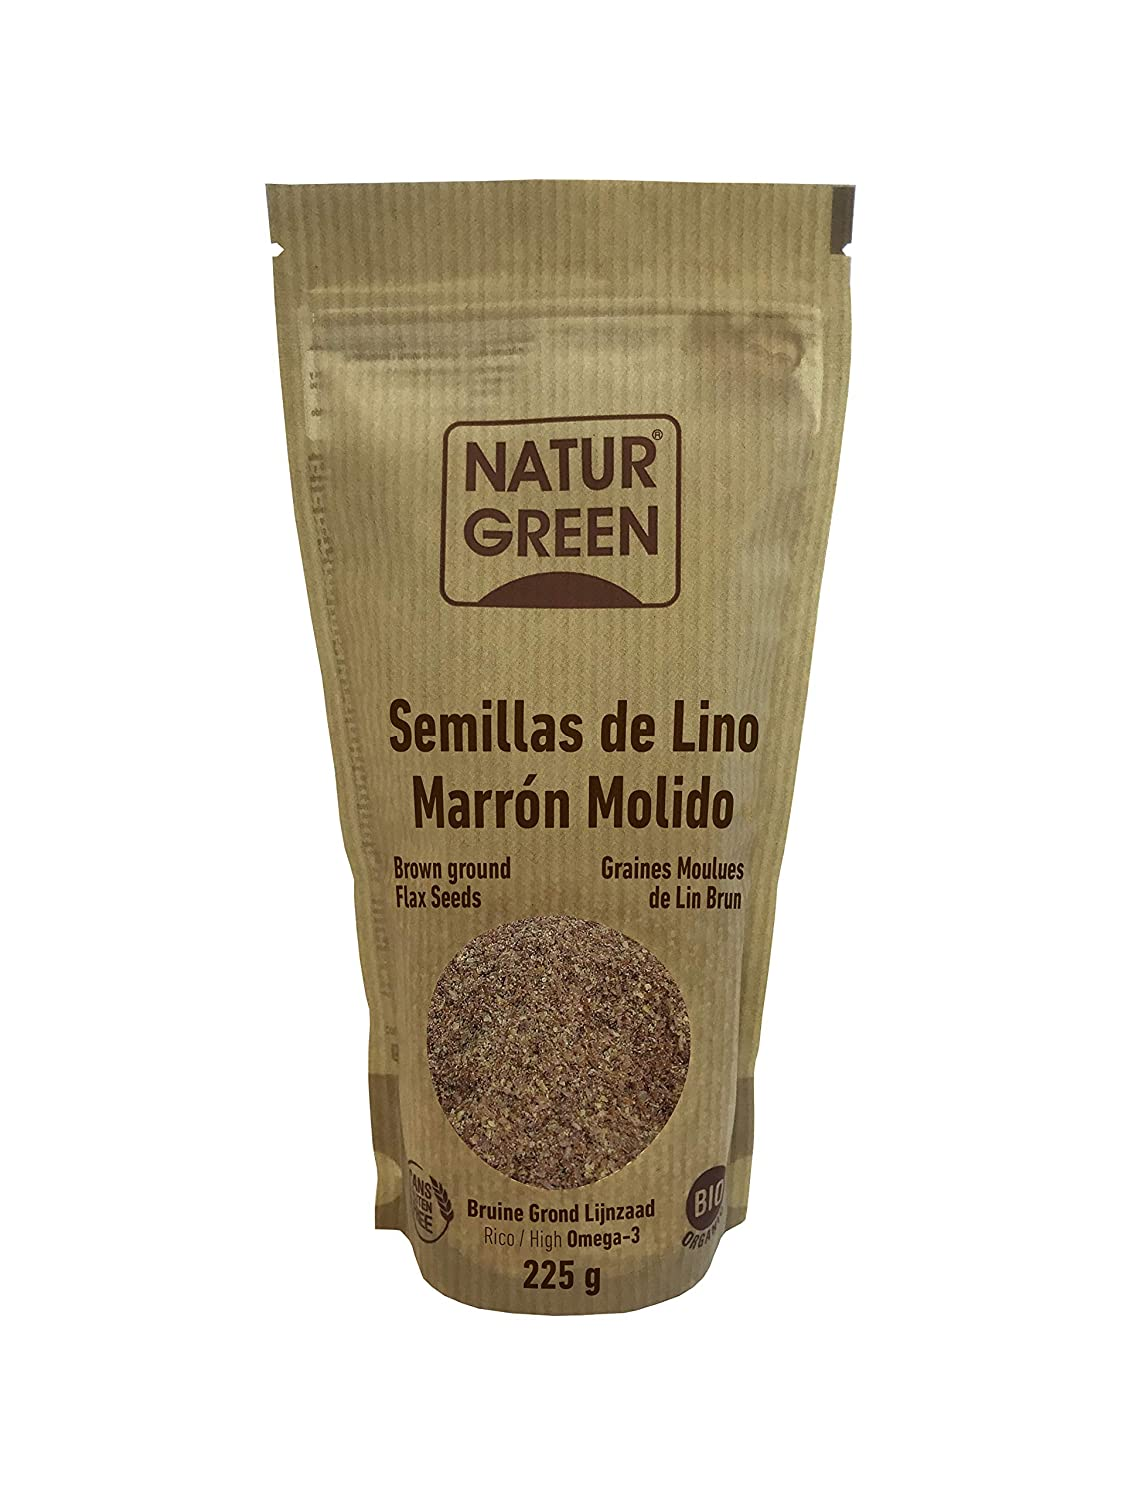 Natur Green Lino Marrón Molido Bio 225g: Amazon.es: Salud y ...